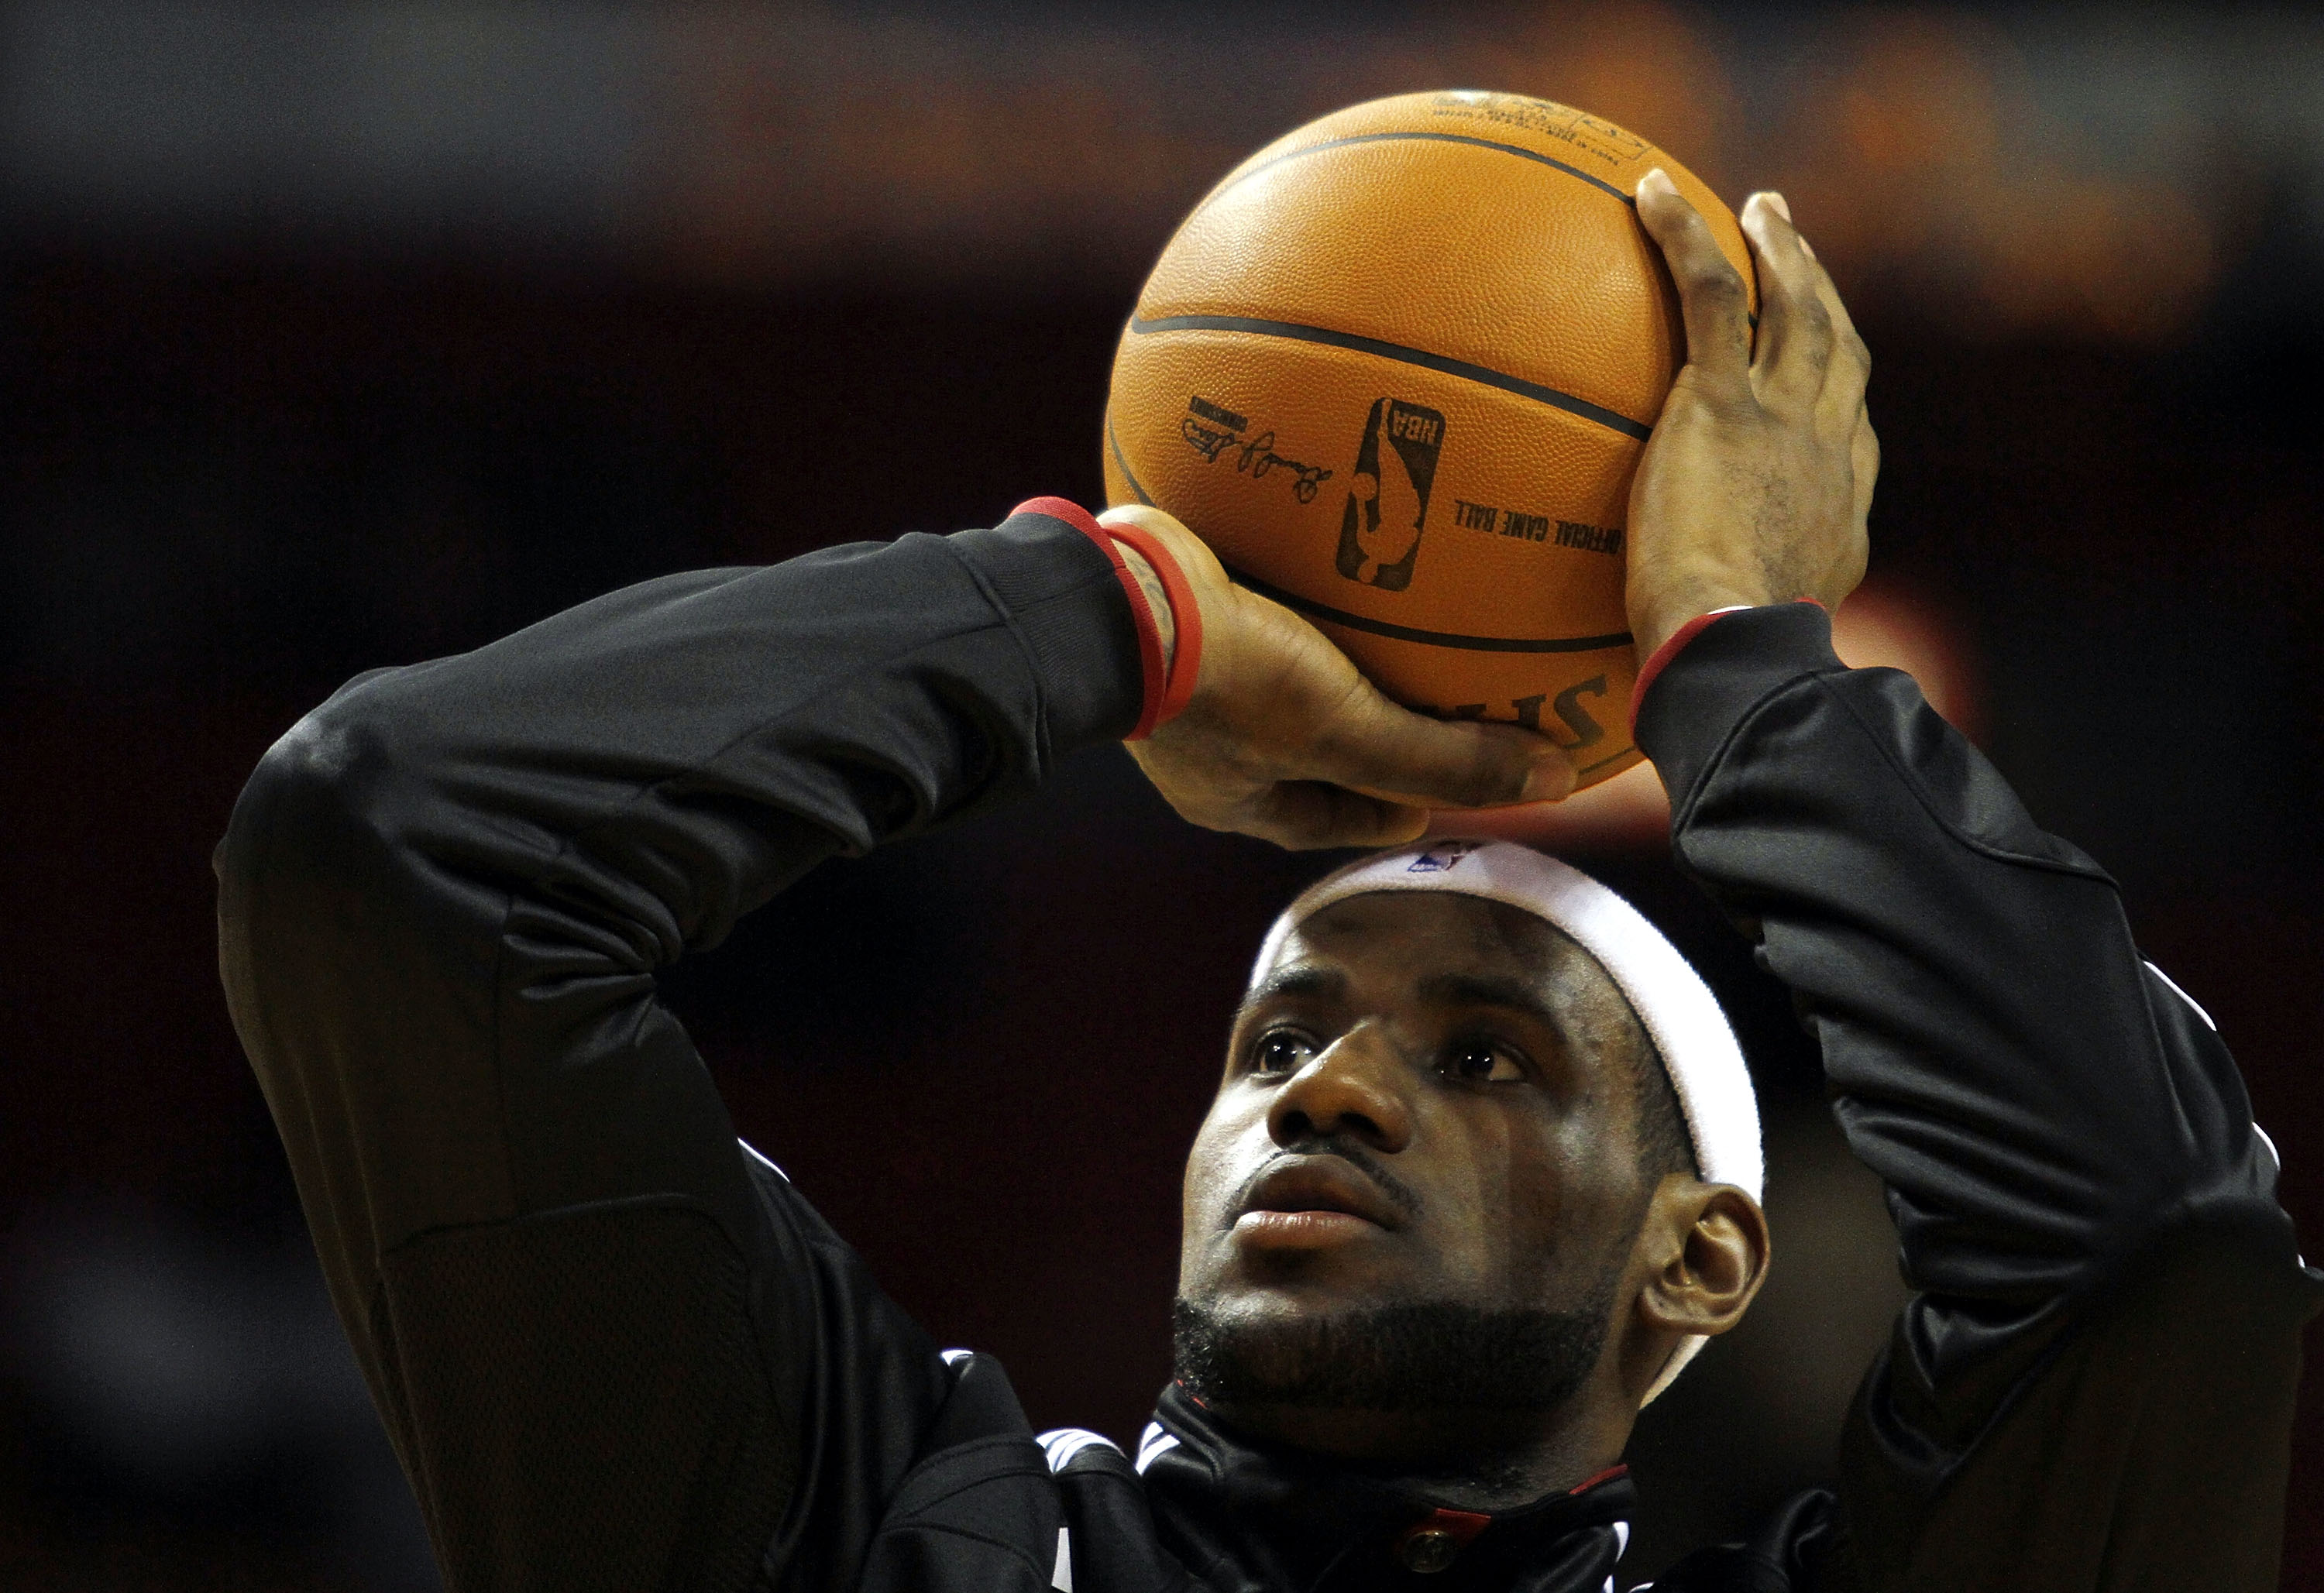 MIAMI - OCTOBER 18:  Forward LeBron James #6 of the Miami Heat prepares to face the Charlotte Bobcats on October 18, 2010 at American Airlines Arena in Miami, Florida. NOTE TO USER: User expressly acknowledges and agrees that, by downloading and/or using